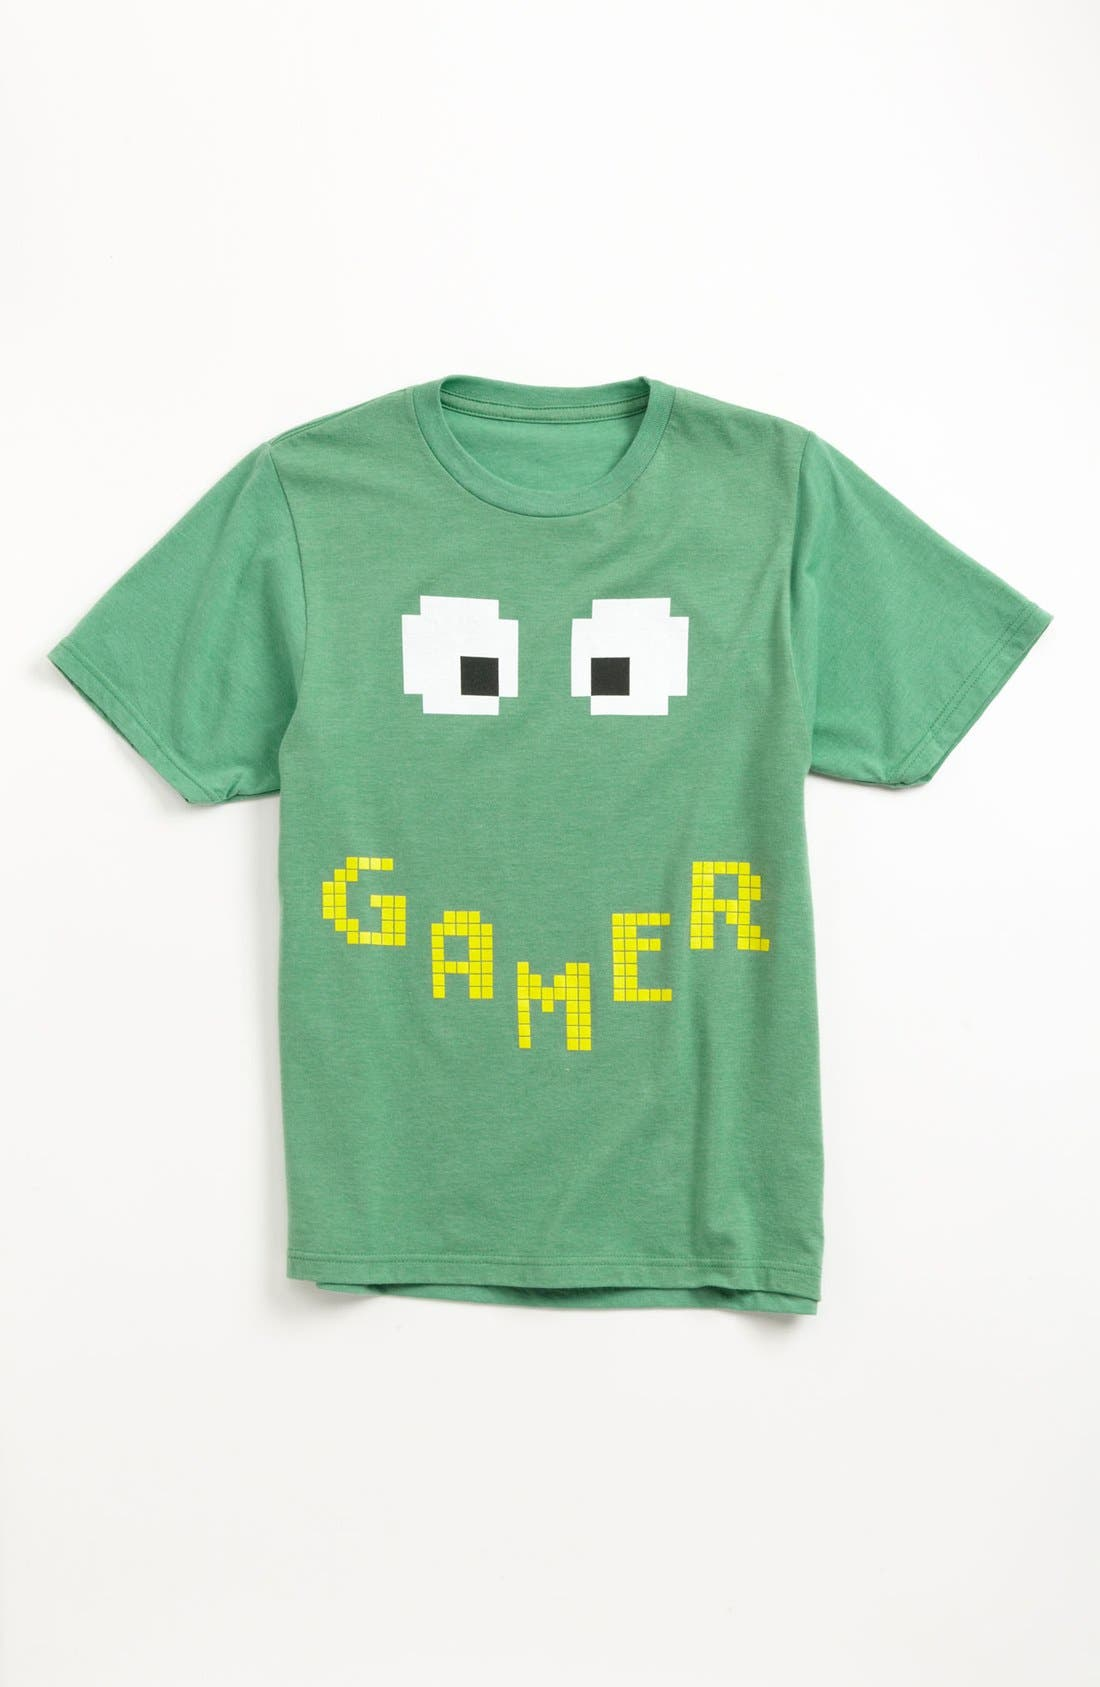 Alternate Image 1 Selected - Jem 'Gamer Glow' T-Shirt (Big Boys)